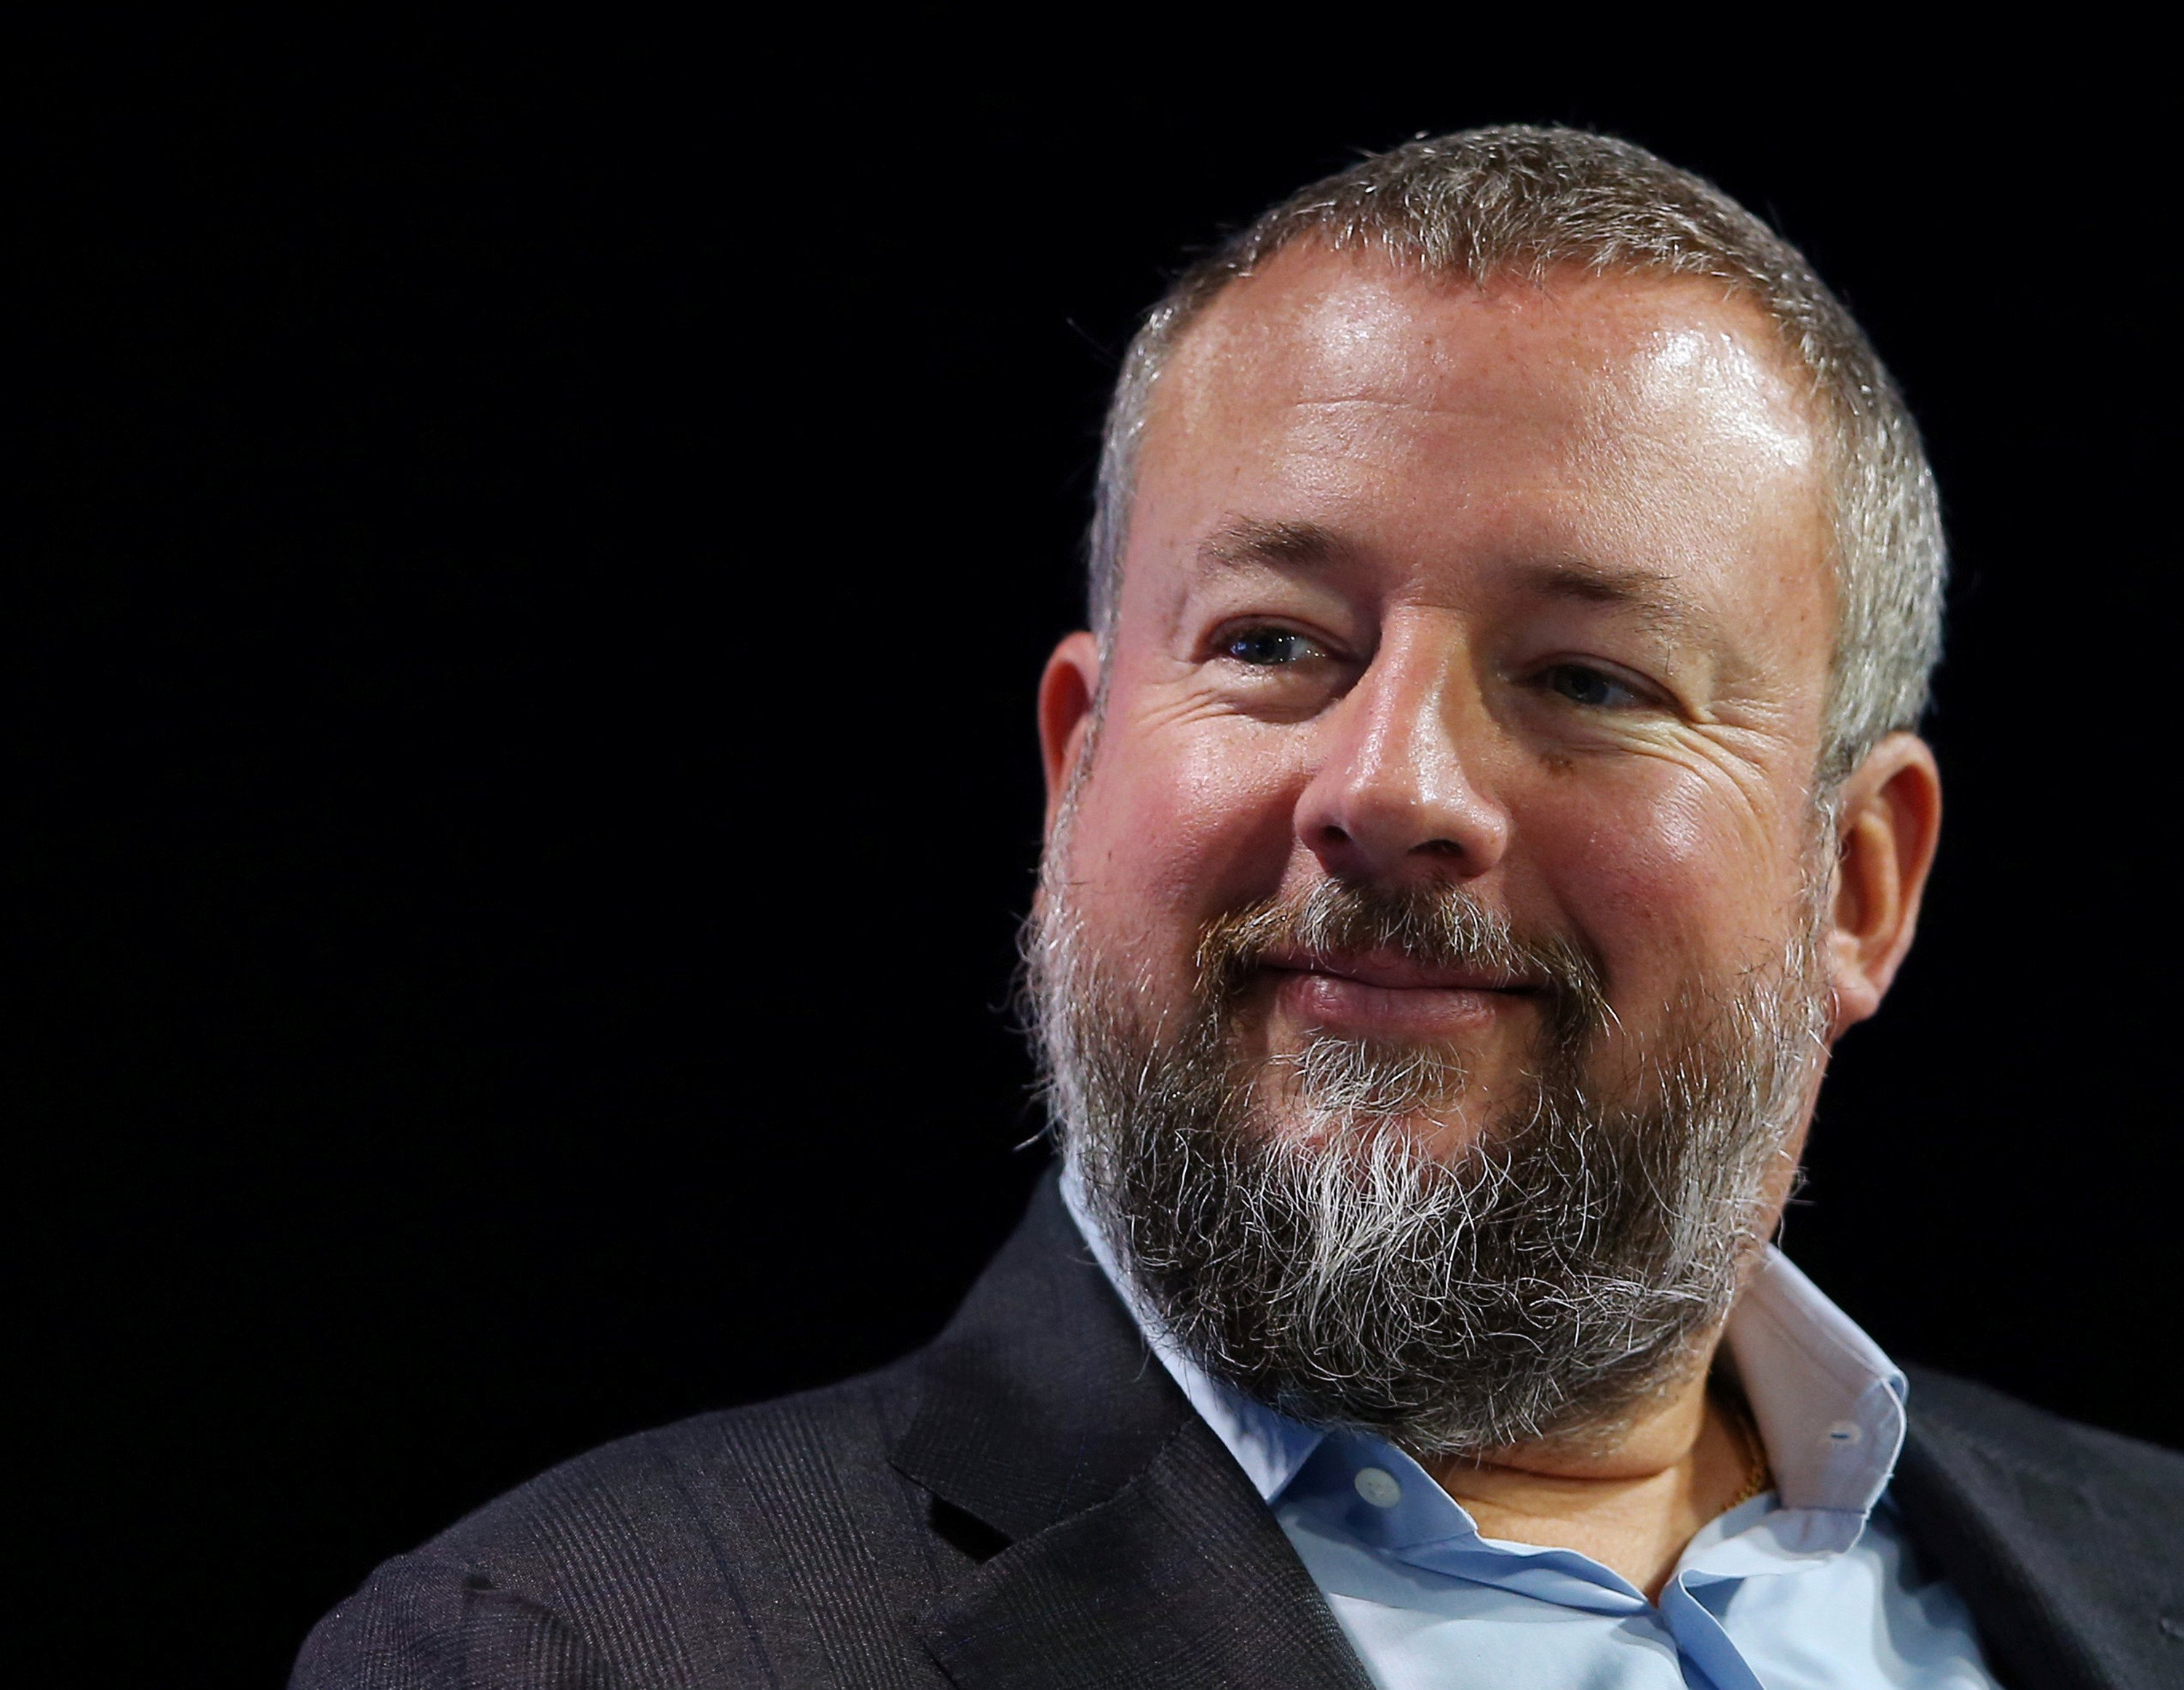 Shane Smith gives up the CEO role at Vice, but not the control